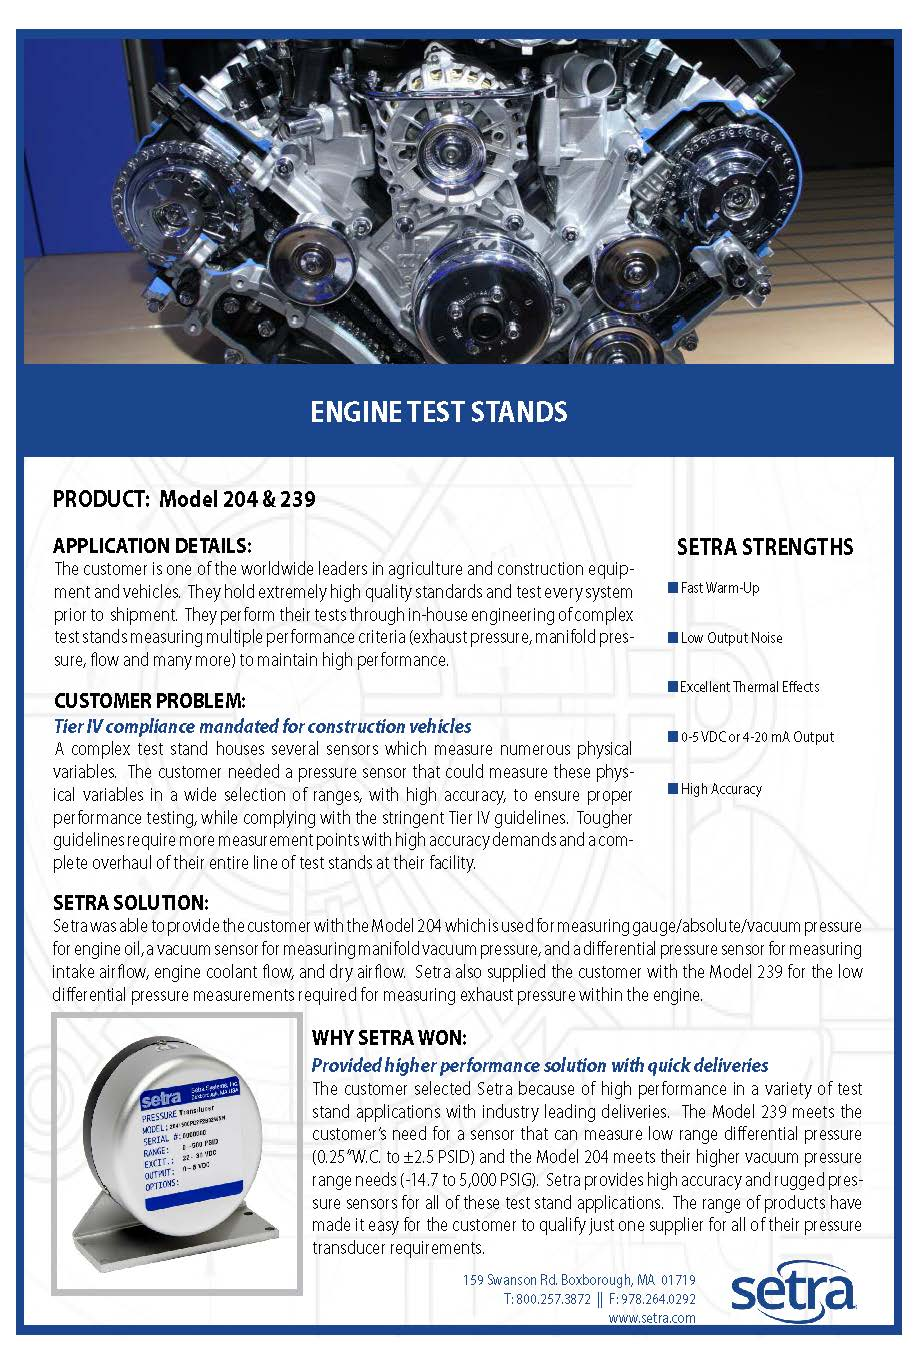 setra 204; pressure transducers; automotive; engine test benches; test stands; pressure monitoring